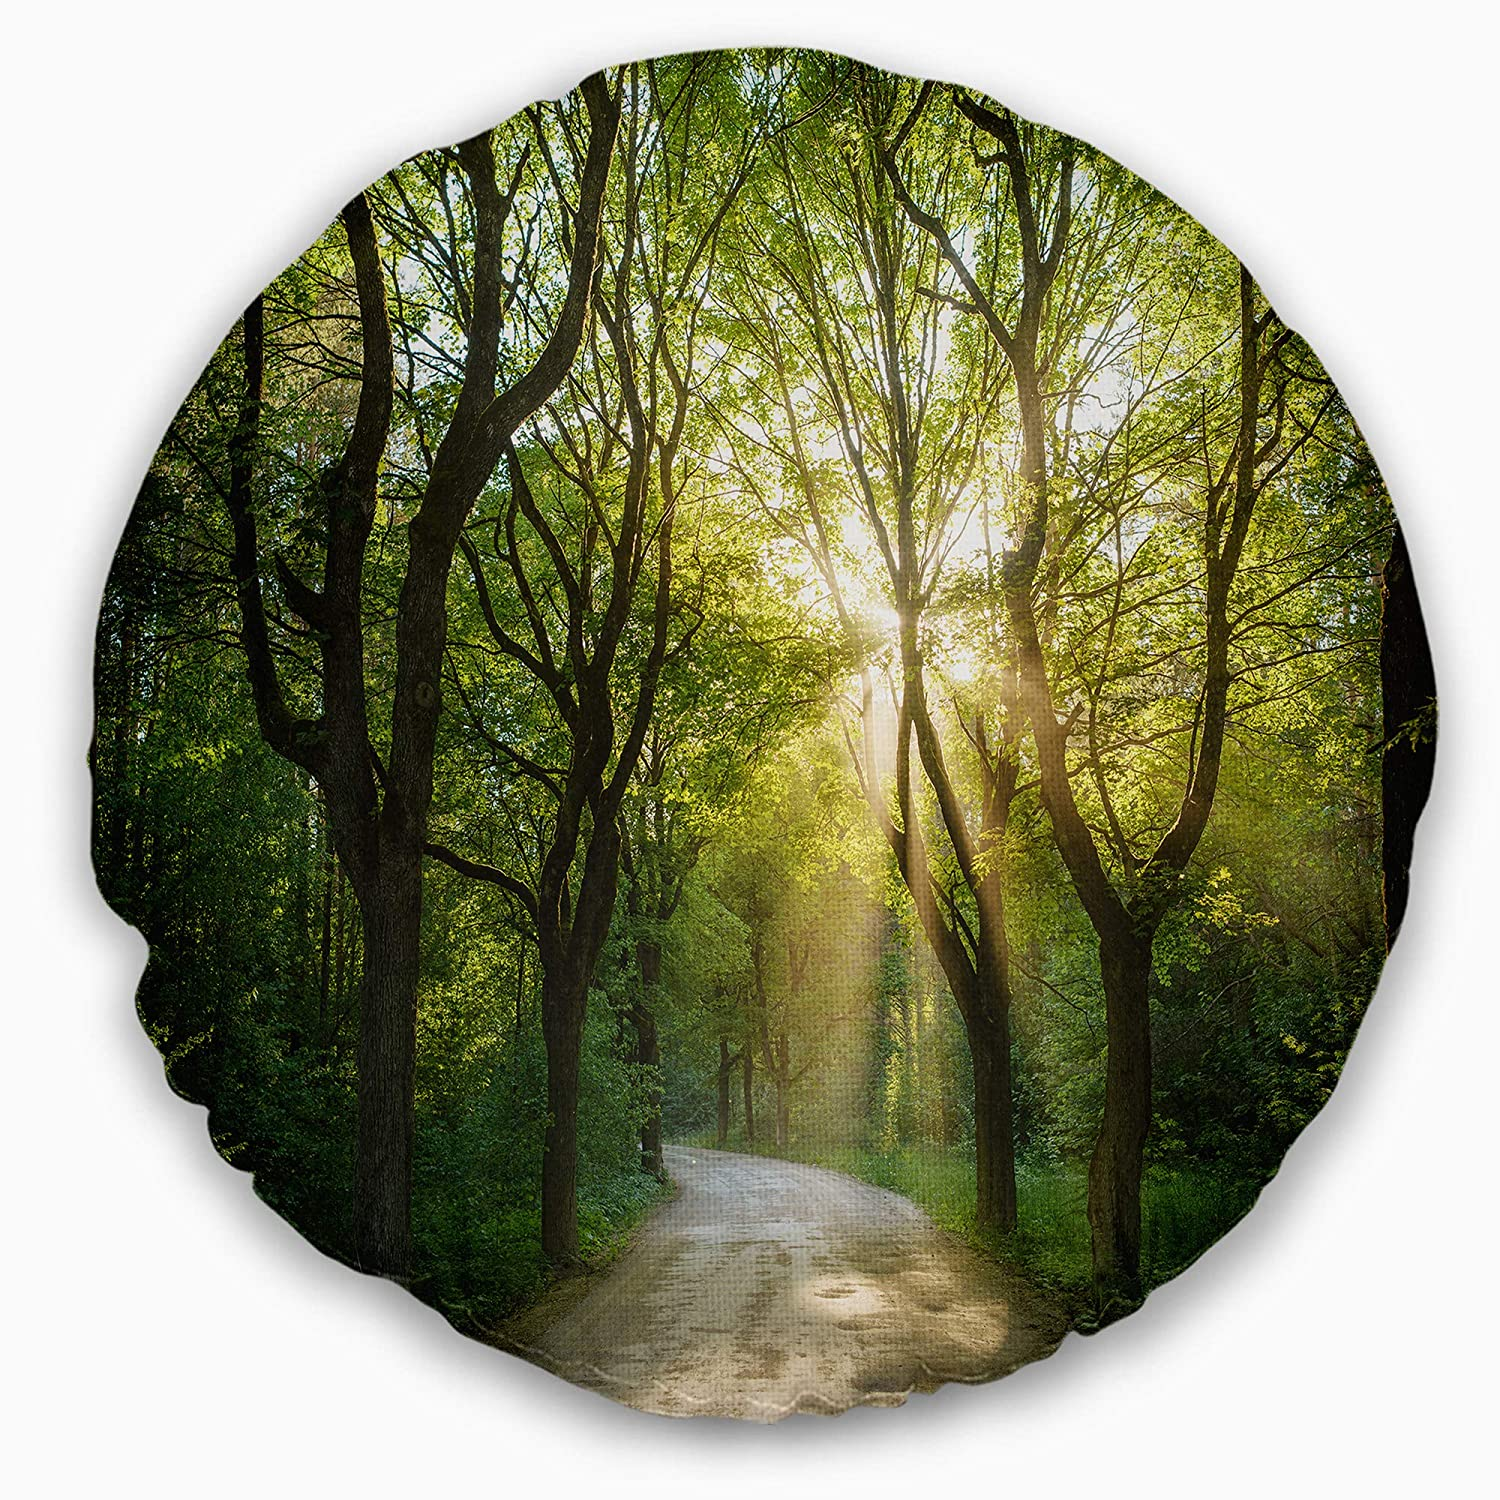 Designart CU15420-20-20-C Evening in Green Forest' Landscape Printed Round Cushion Cover for Living Room, Sofa Throw Pillow 20', Insert Side